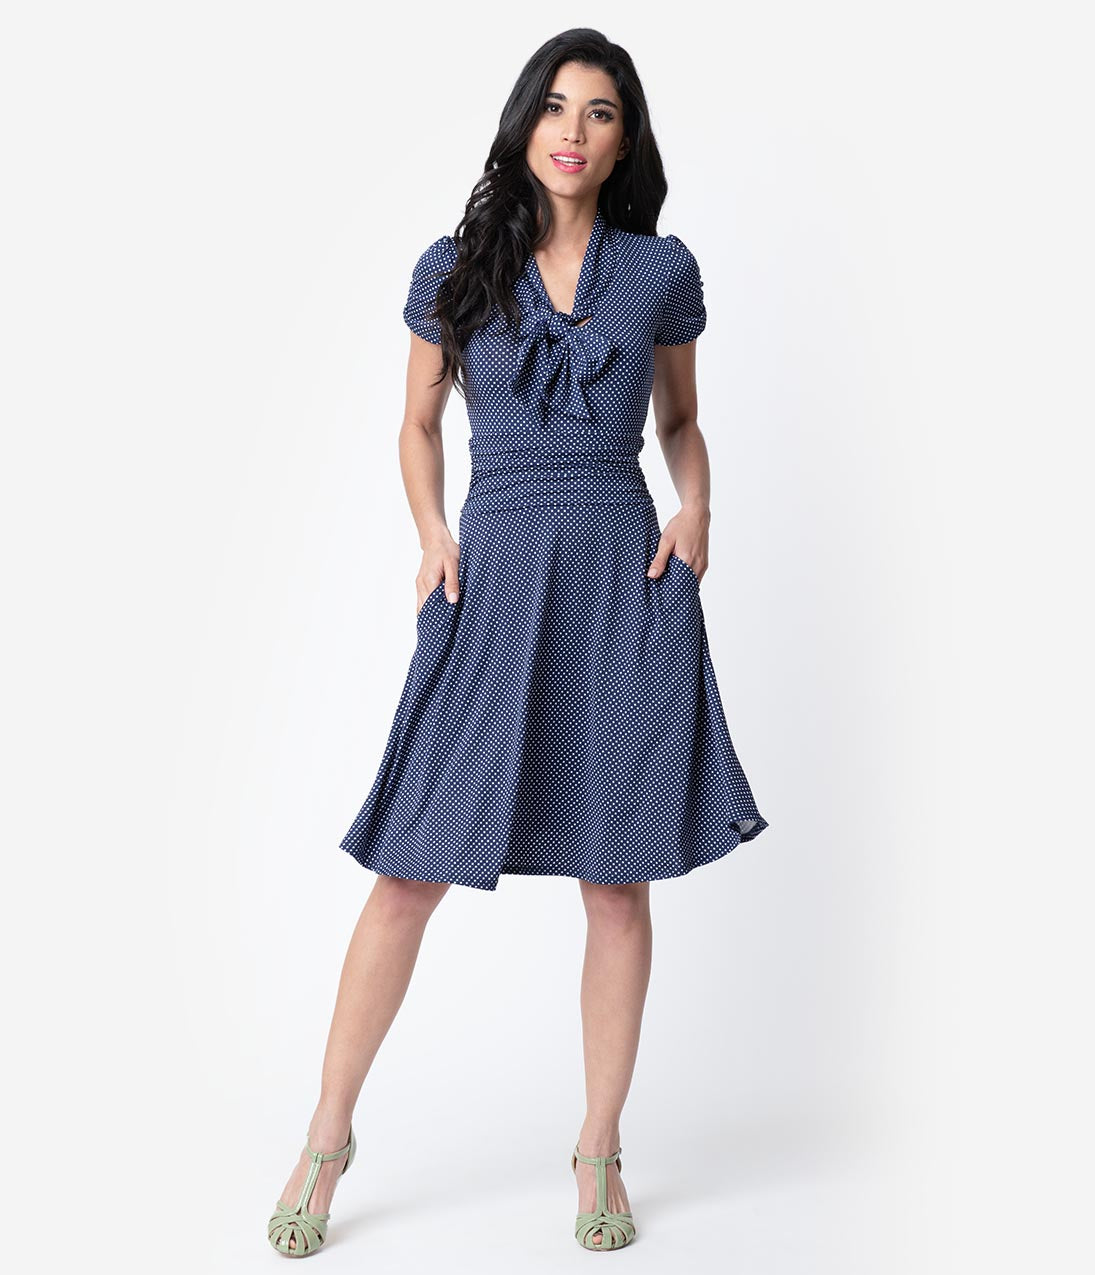 1940s Dresses | 40s Dress, Swing Dress Folter Navy  White Pin Dot Print Short Sleeve Fit  Flare Dress $72.00 AT vintagedancer.com